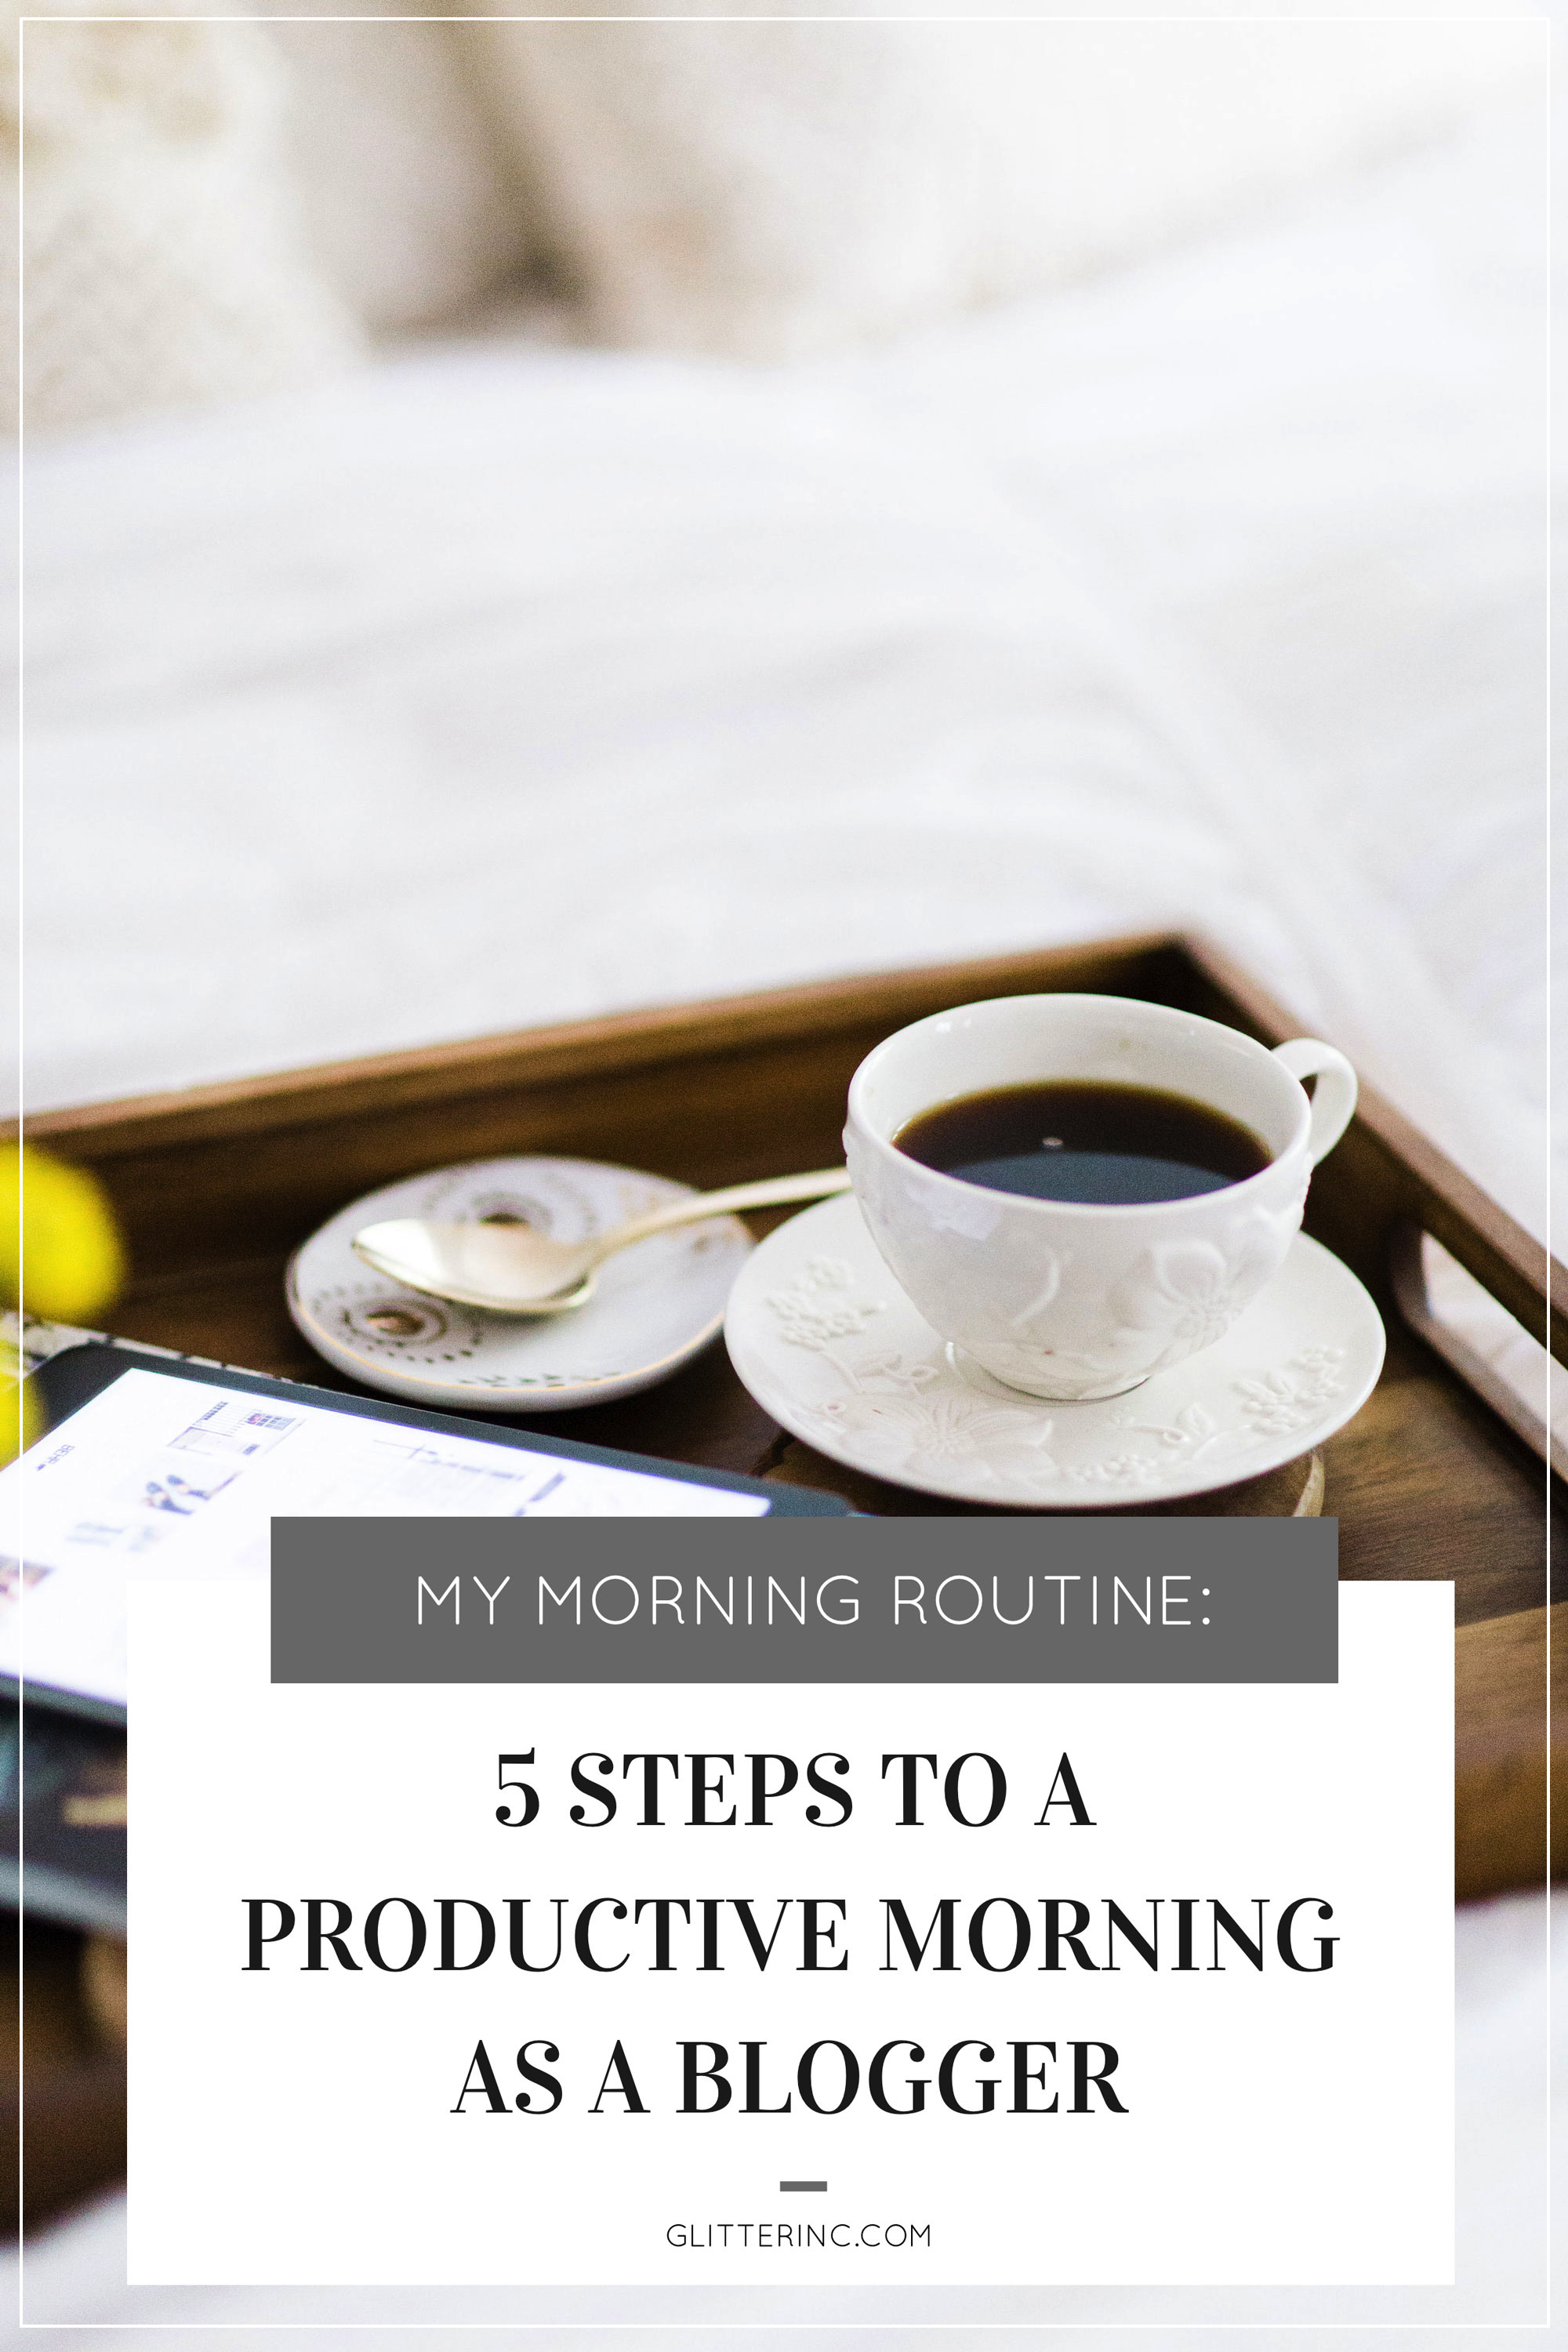 My Morning Routine: 5 Steps to a Productive Morning as a Blogger. | glitterinc.com | @glitterinc